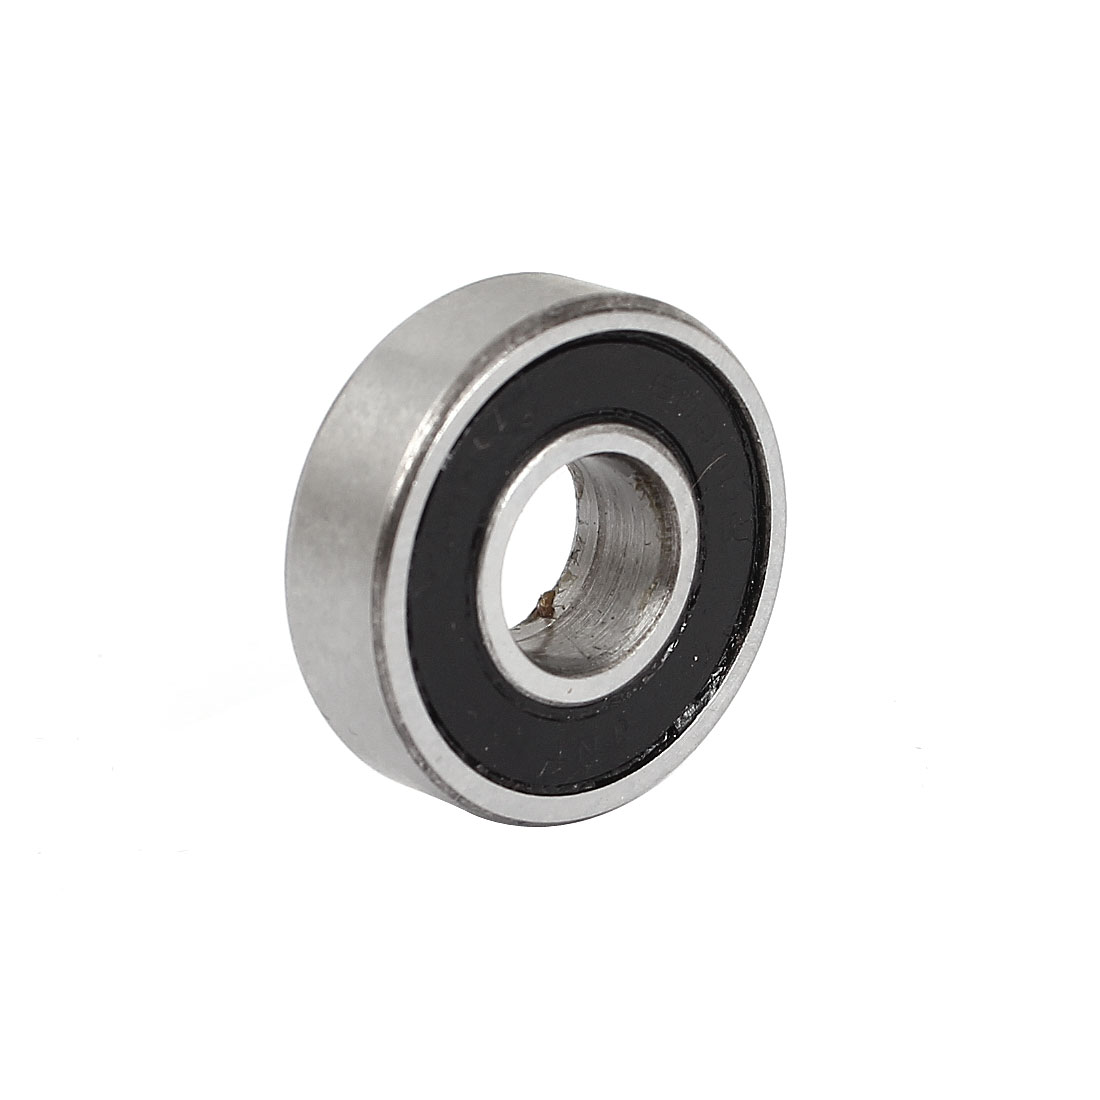 6000RS Metal Sealed Groove Bearing Ball for Electric Motor 25mmx10mmx8mm - image 2 of 2